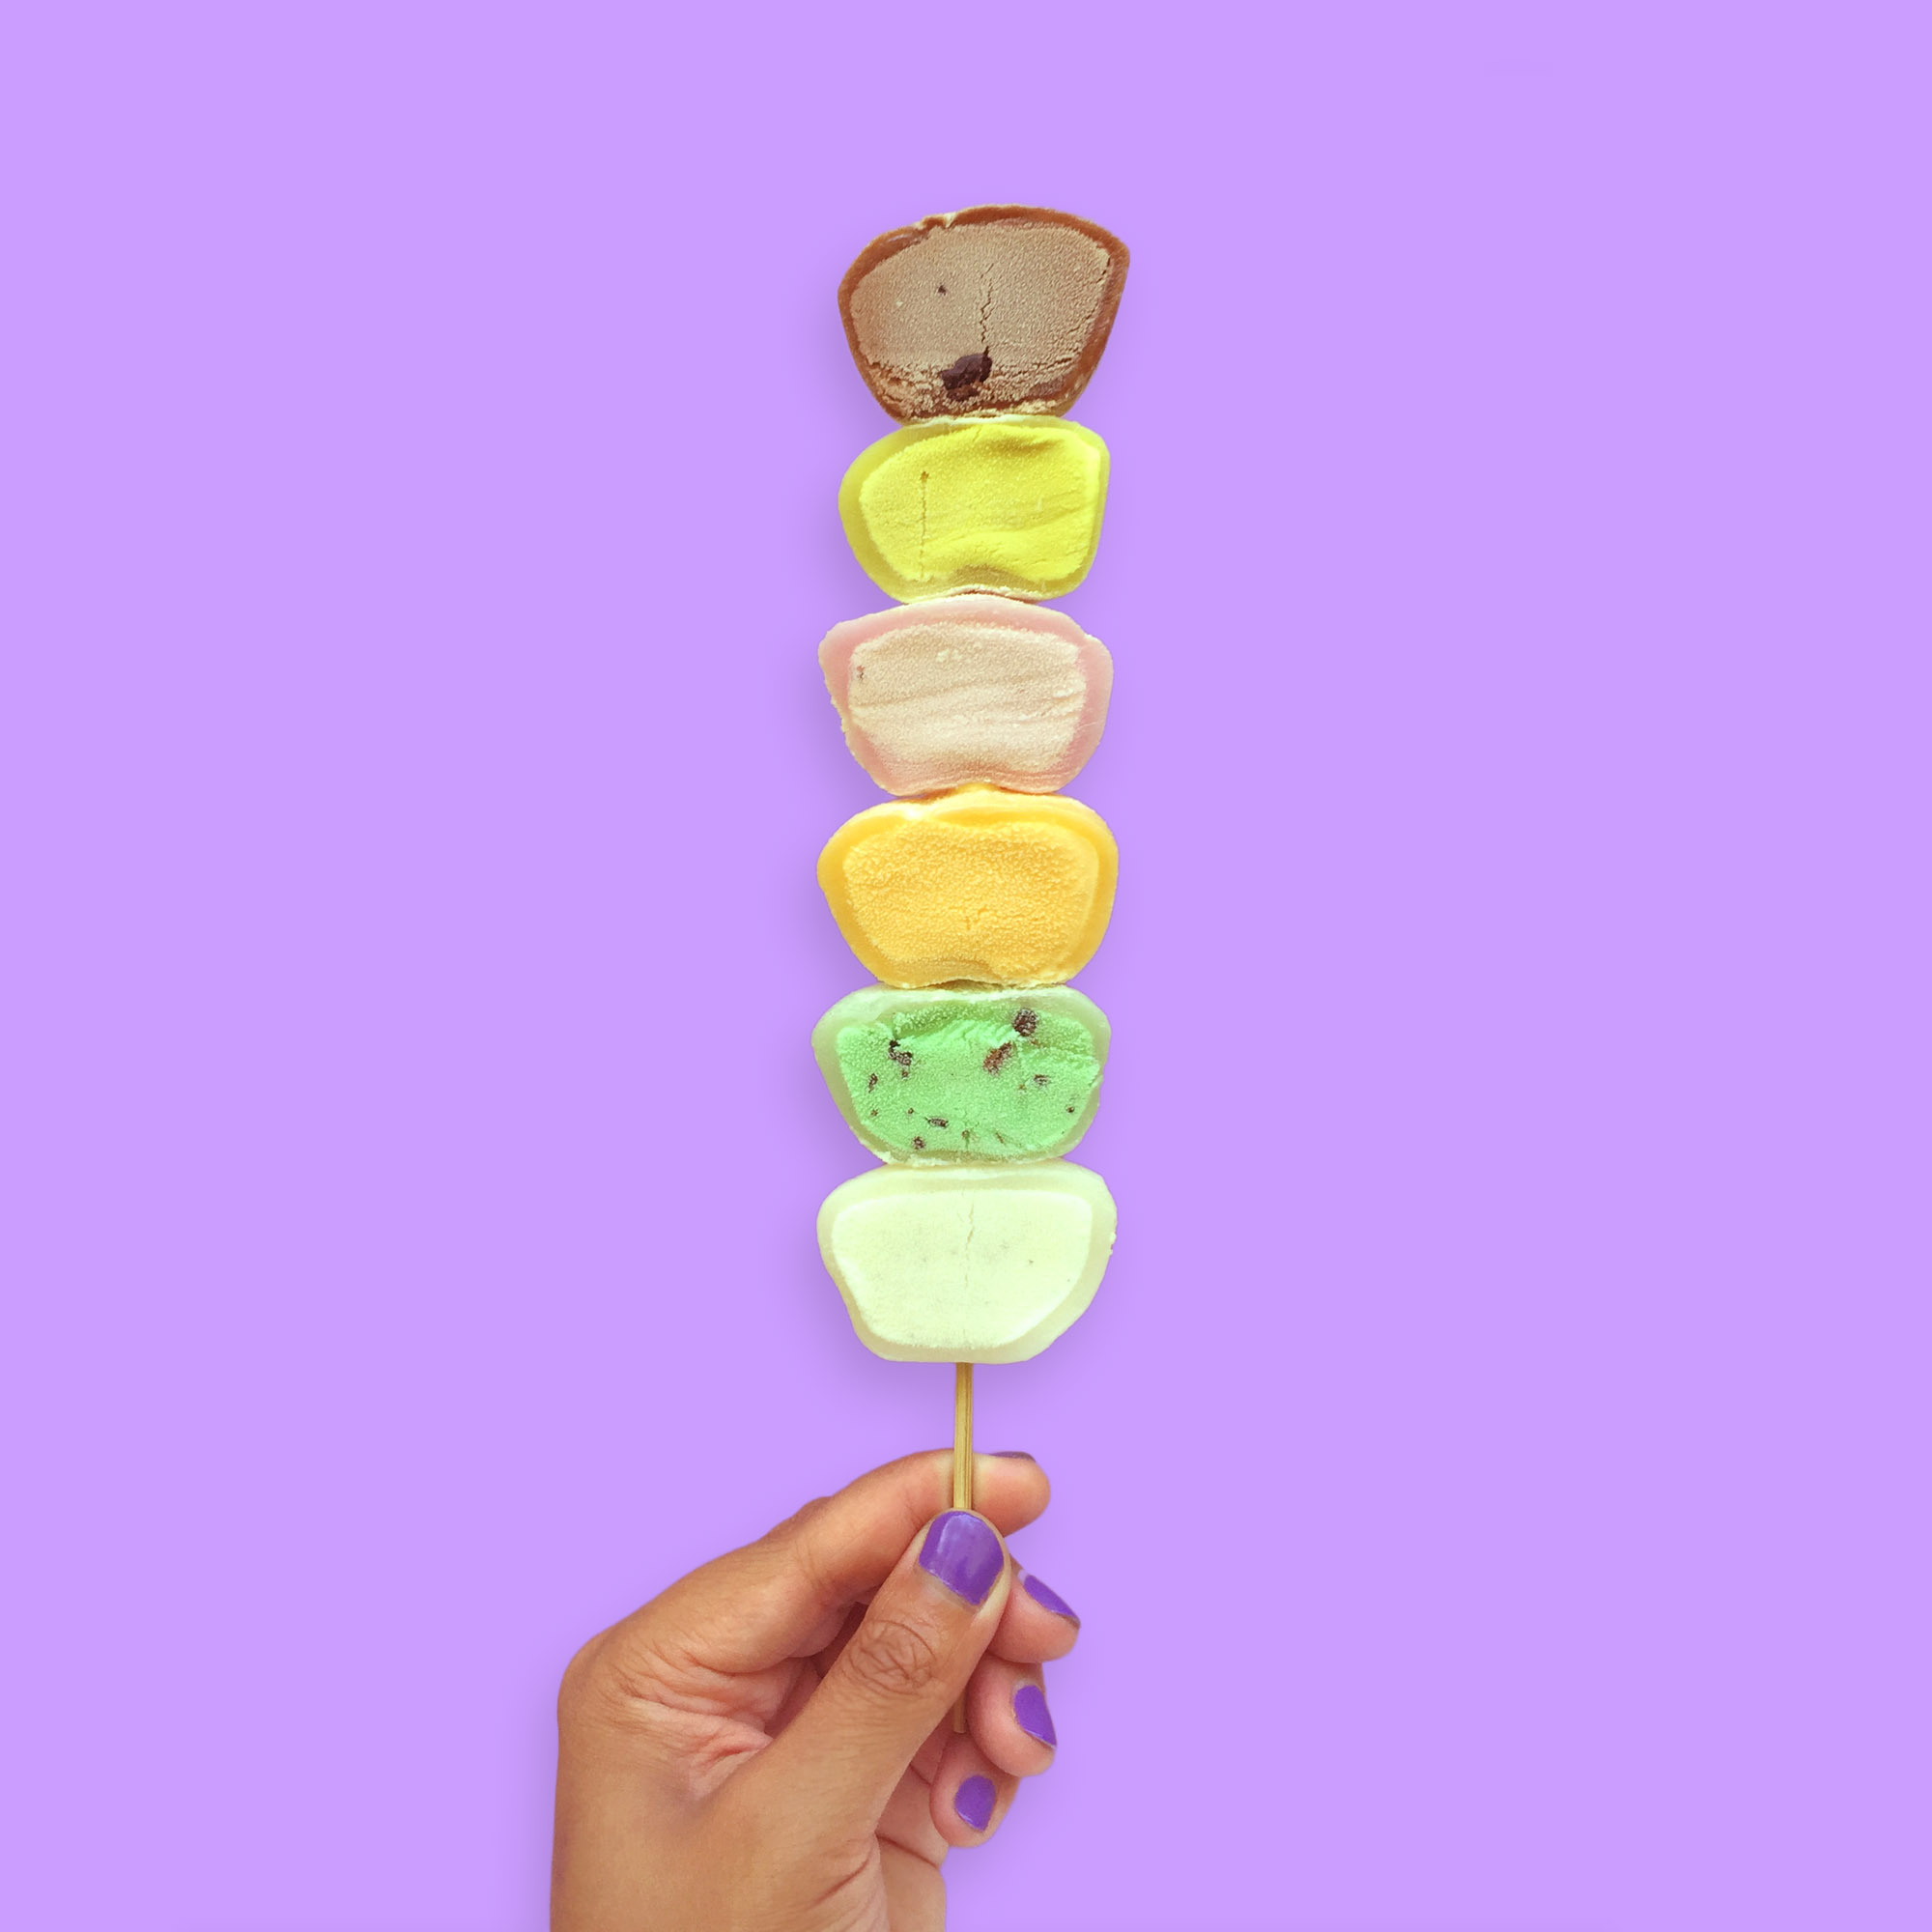 amy_chen_design_my_mo_mochi_skewer_colorful_food_styling